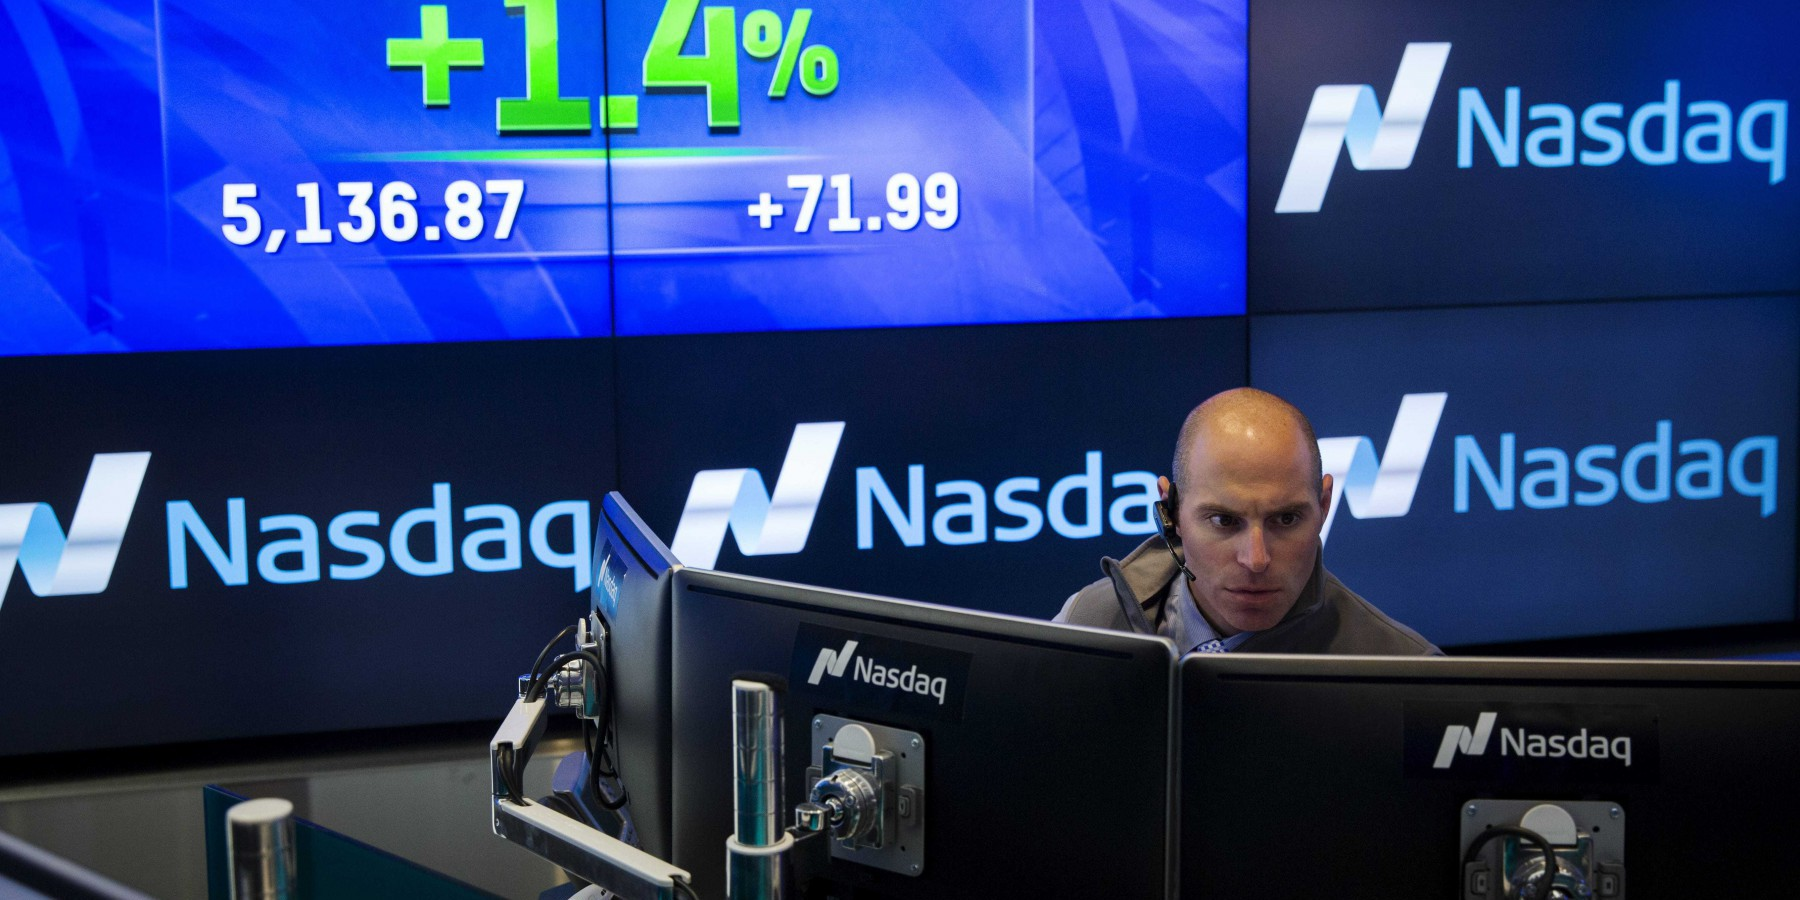 A trader works at his desk at the Nasdaq MarketSite in New York June 18, 2015. The Nasdaq composite index rose to a new intraday record of 5,143.32 on Thursday, 15 years after the dot-com bubble sent the index to its previous peak on March 10, 2000 to 5,132.52. REUTERS/Lucas Jackson TPX IMAGES OF THE DAY      - RTX1H5T3